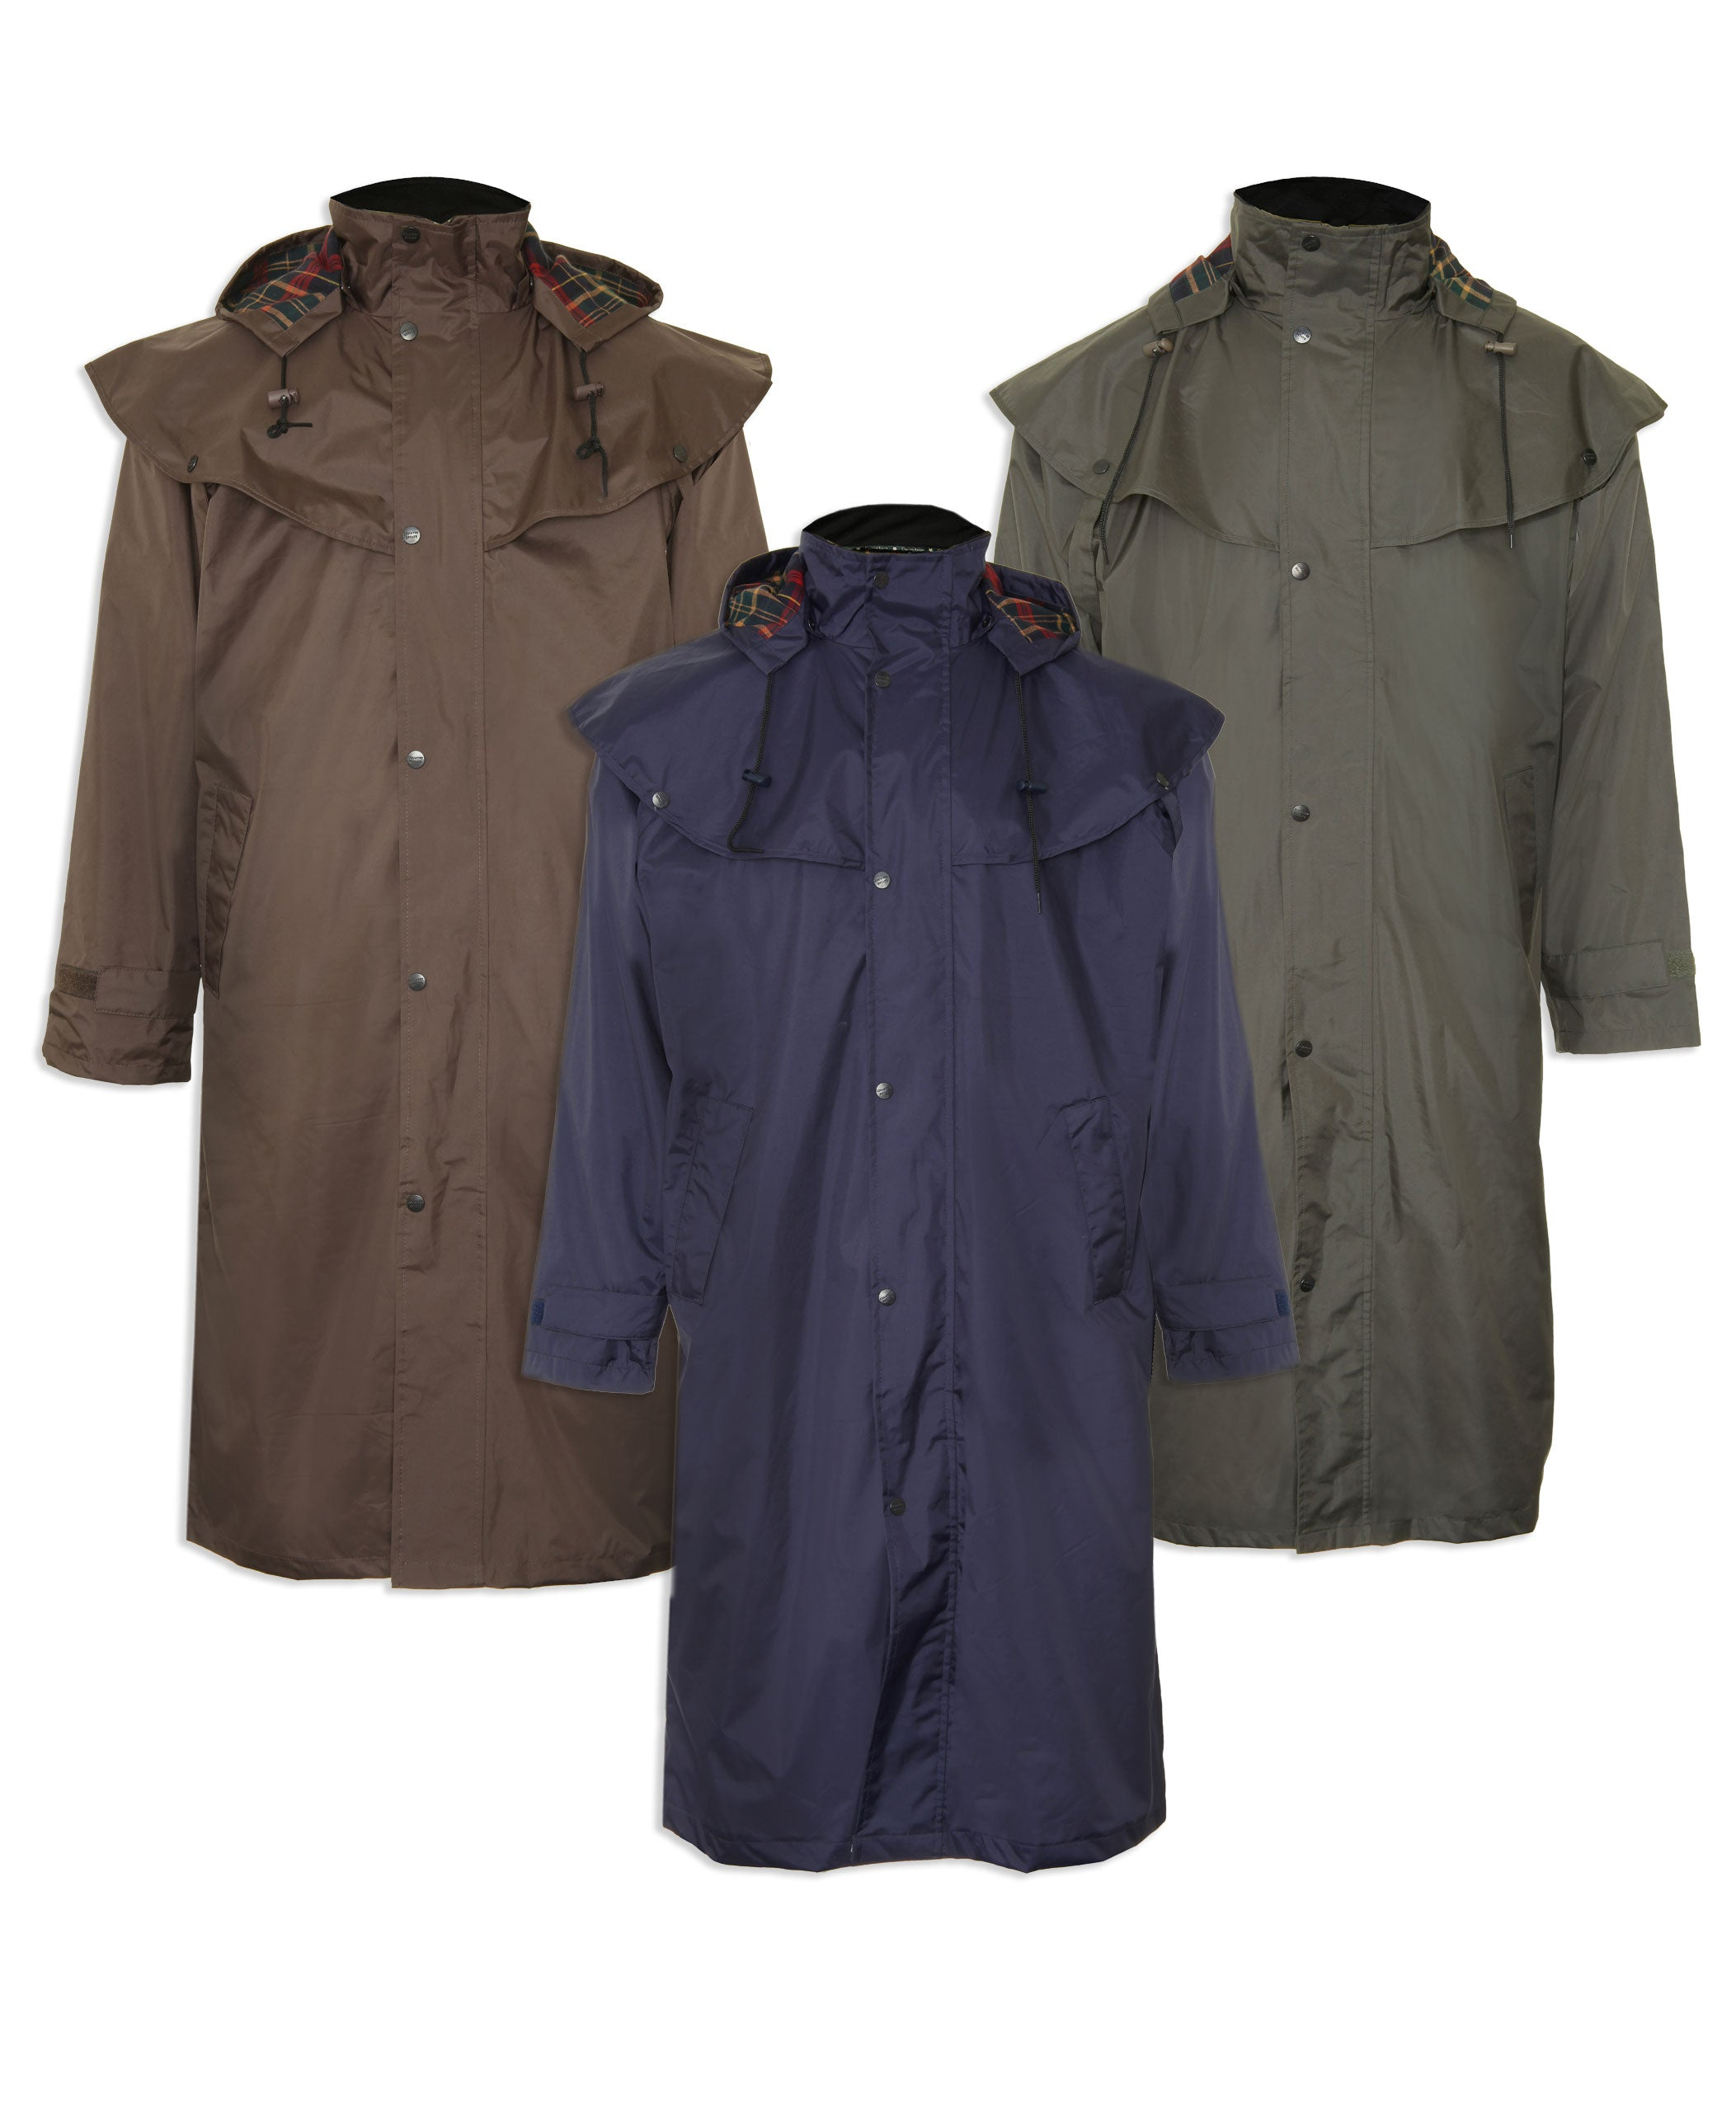 Highgrove Full Length Men's Long Waterproof Coat by Champion. Olive Navy Brown